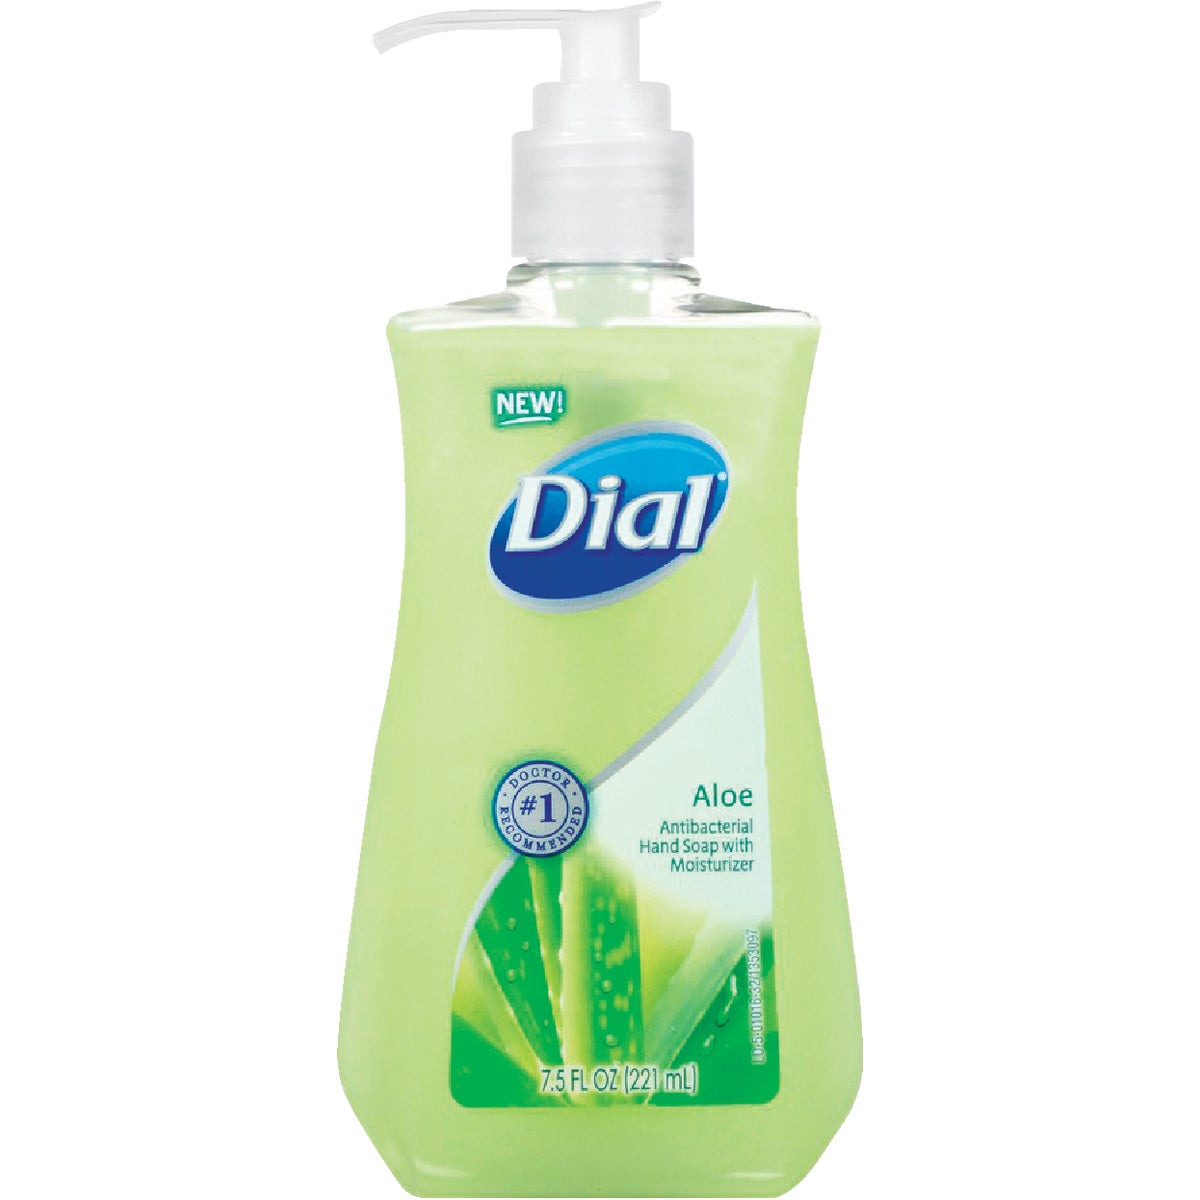 7-1/2OZ LIQUID SOAP - 1016 by Dial Corp